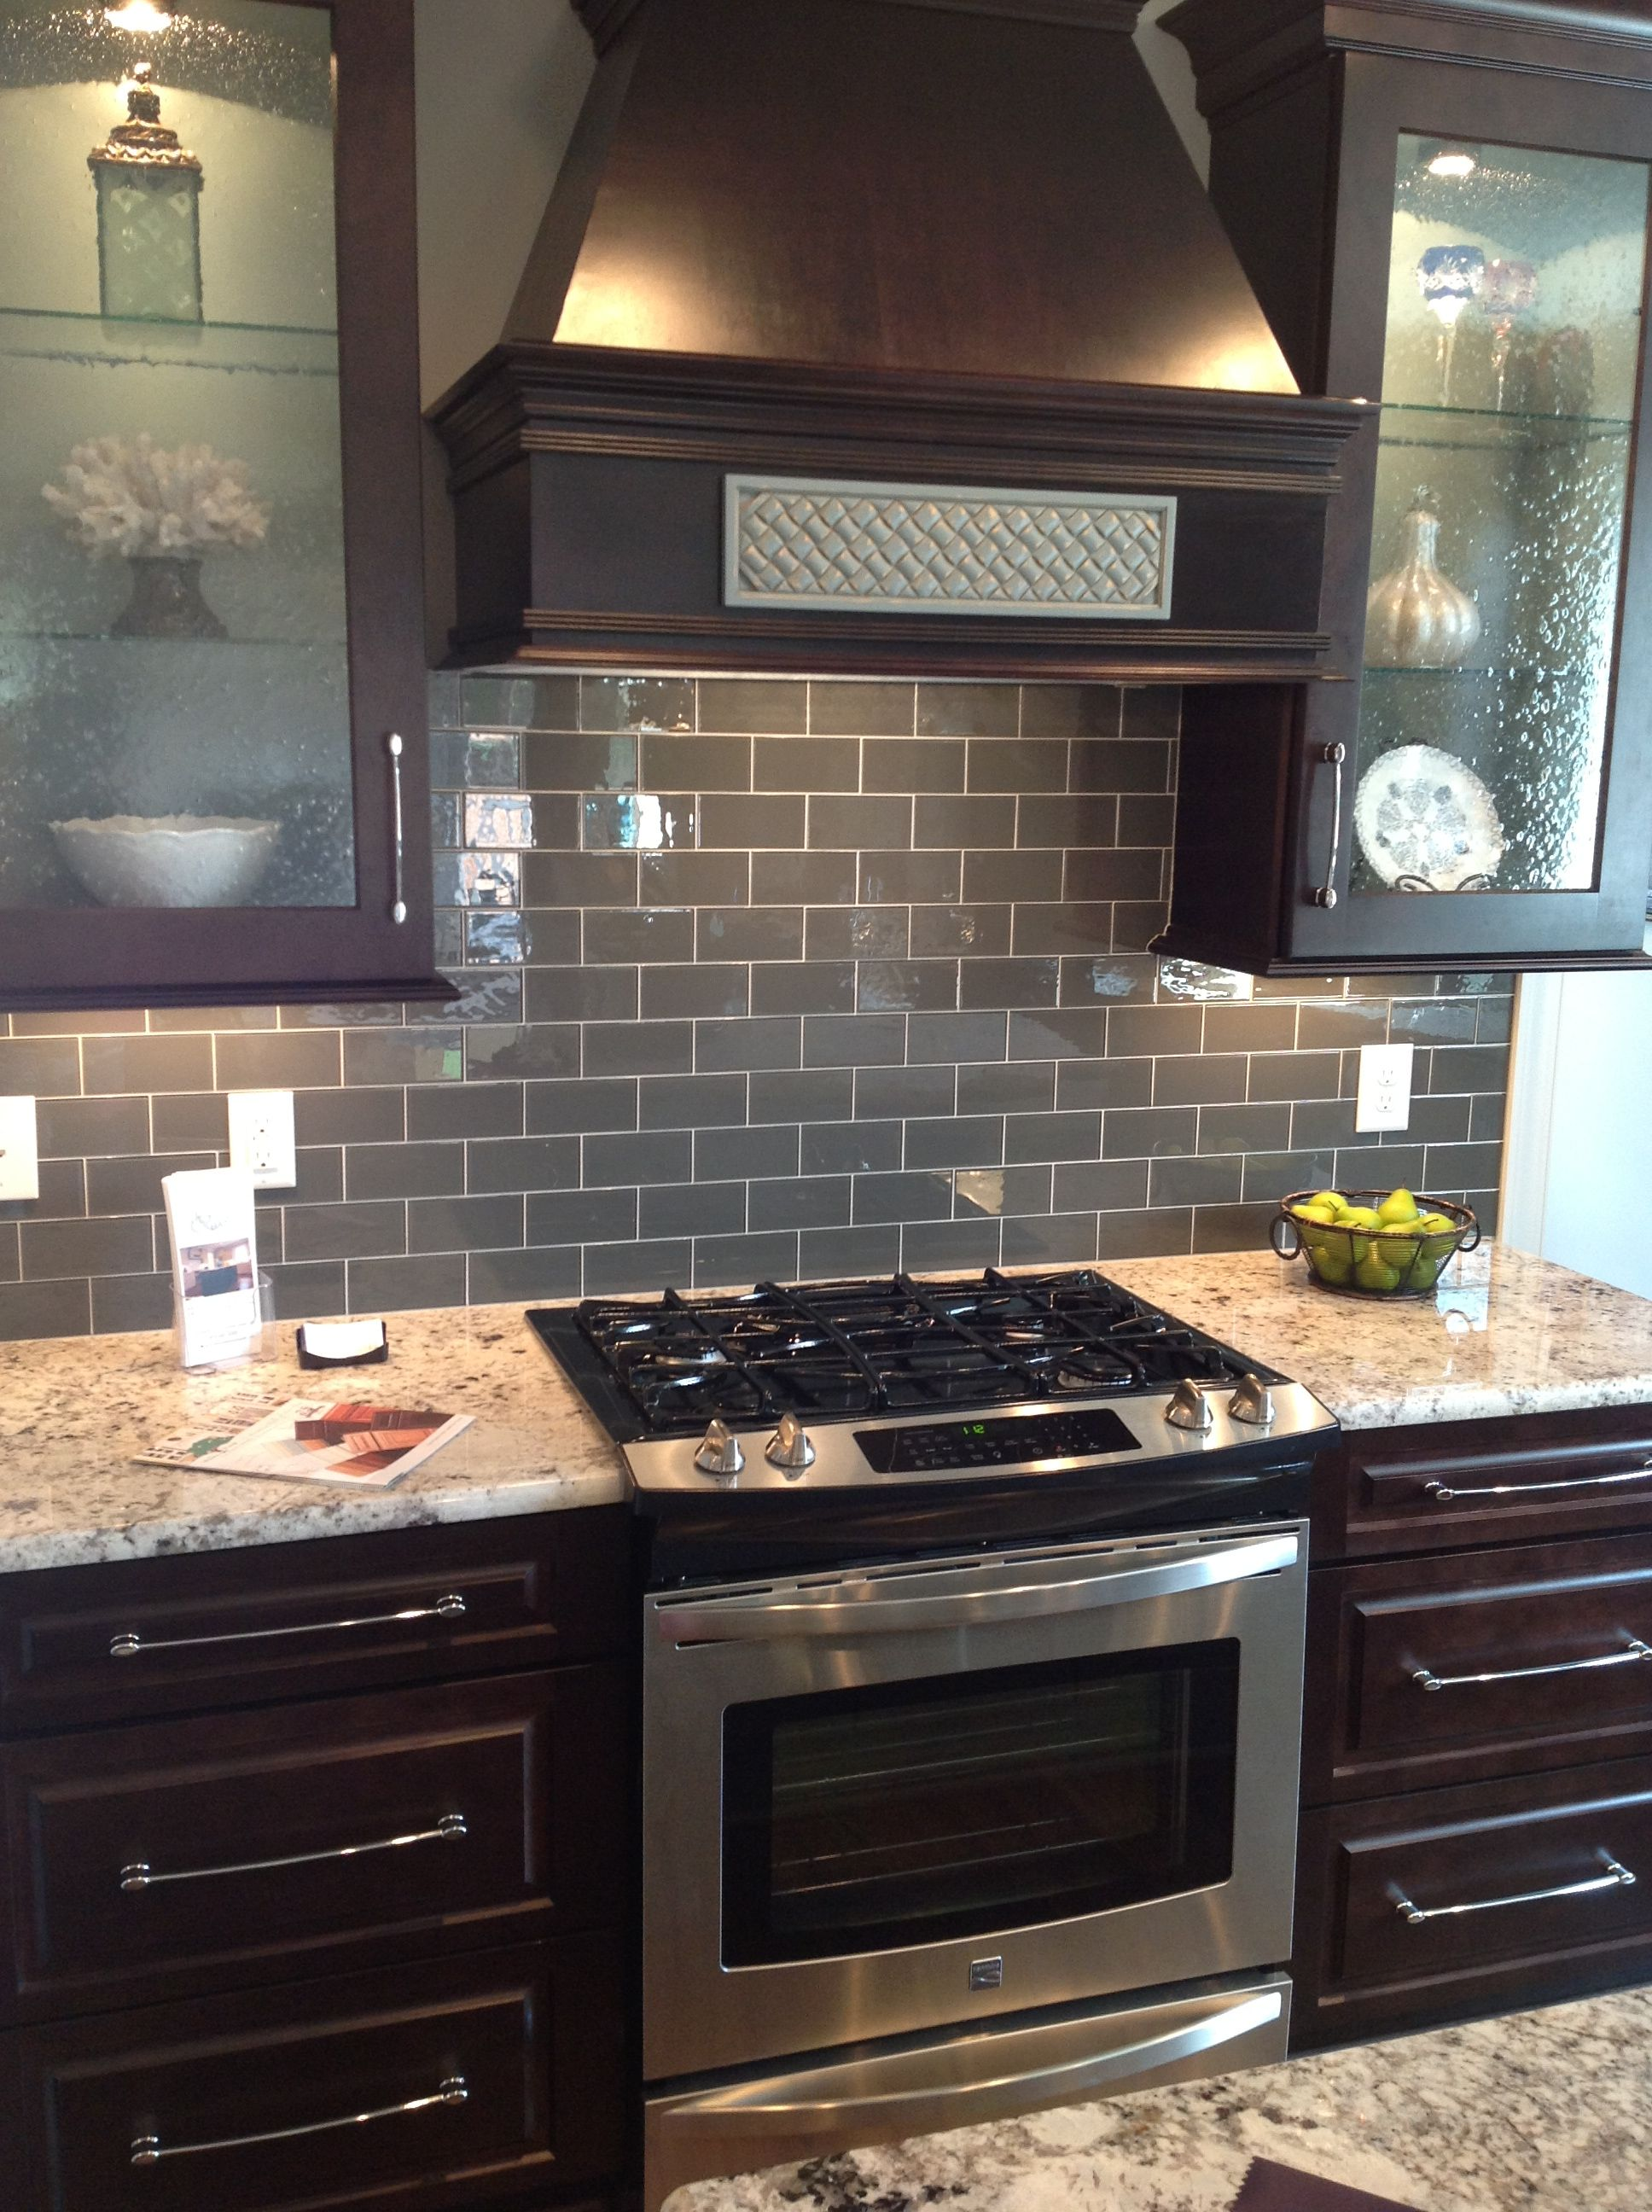 Superbe U0027Iceu0027 Gray Glass Subway Tile Backsplash With Dark Brown Cabinets And  Stainless Steel Appliances.